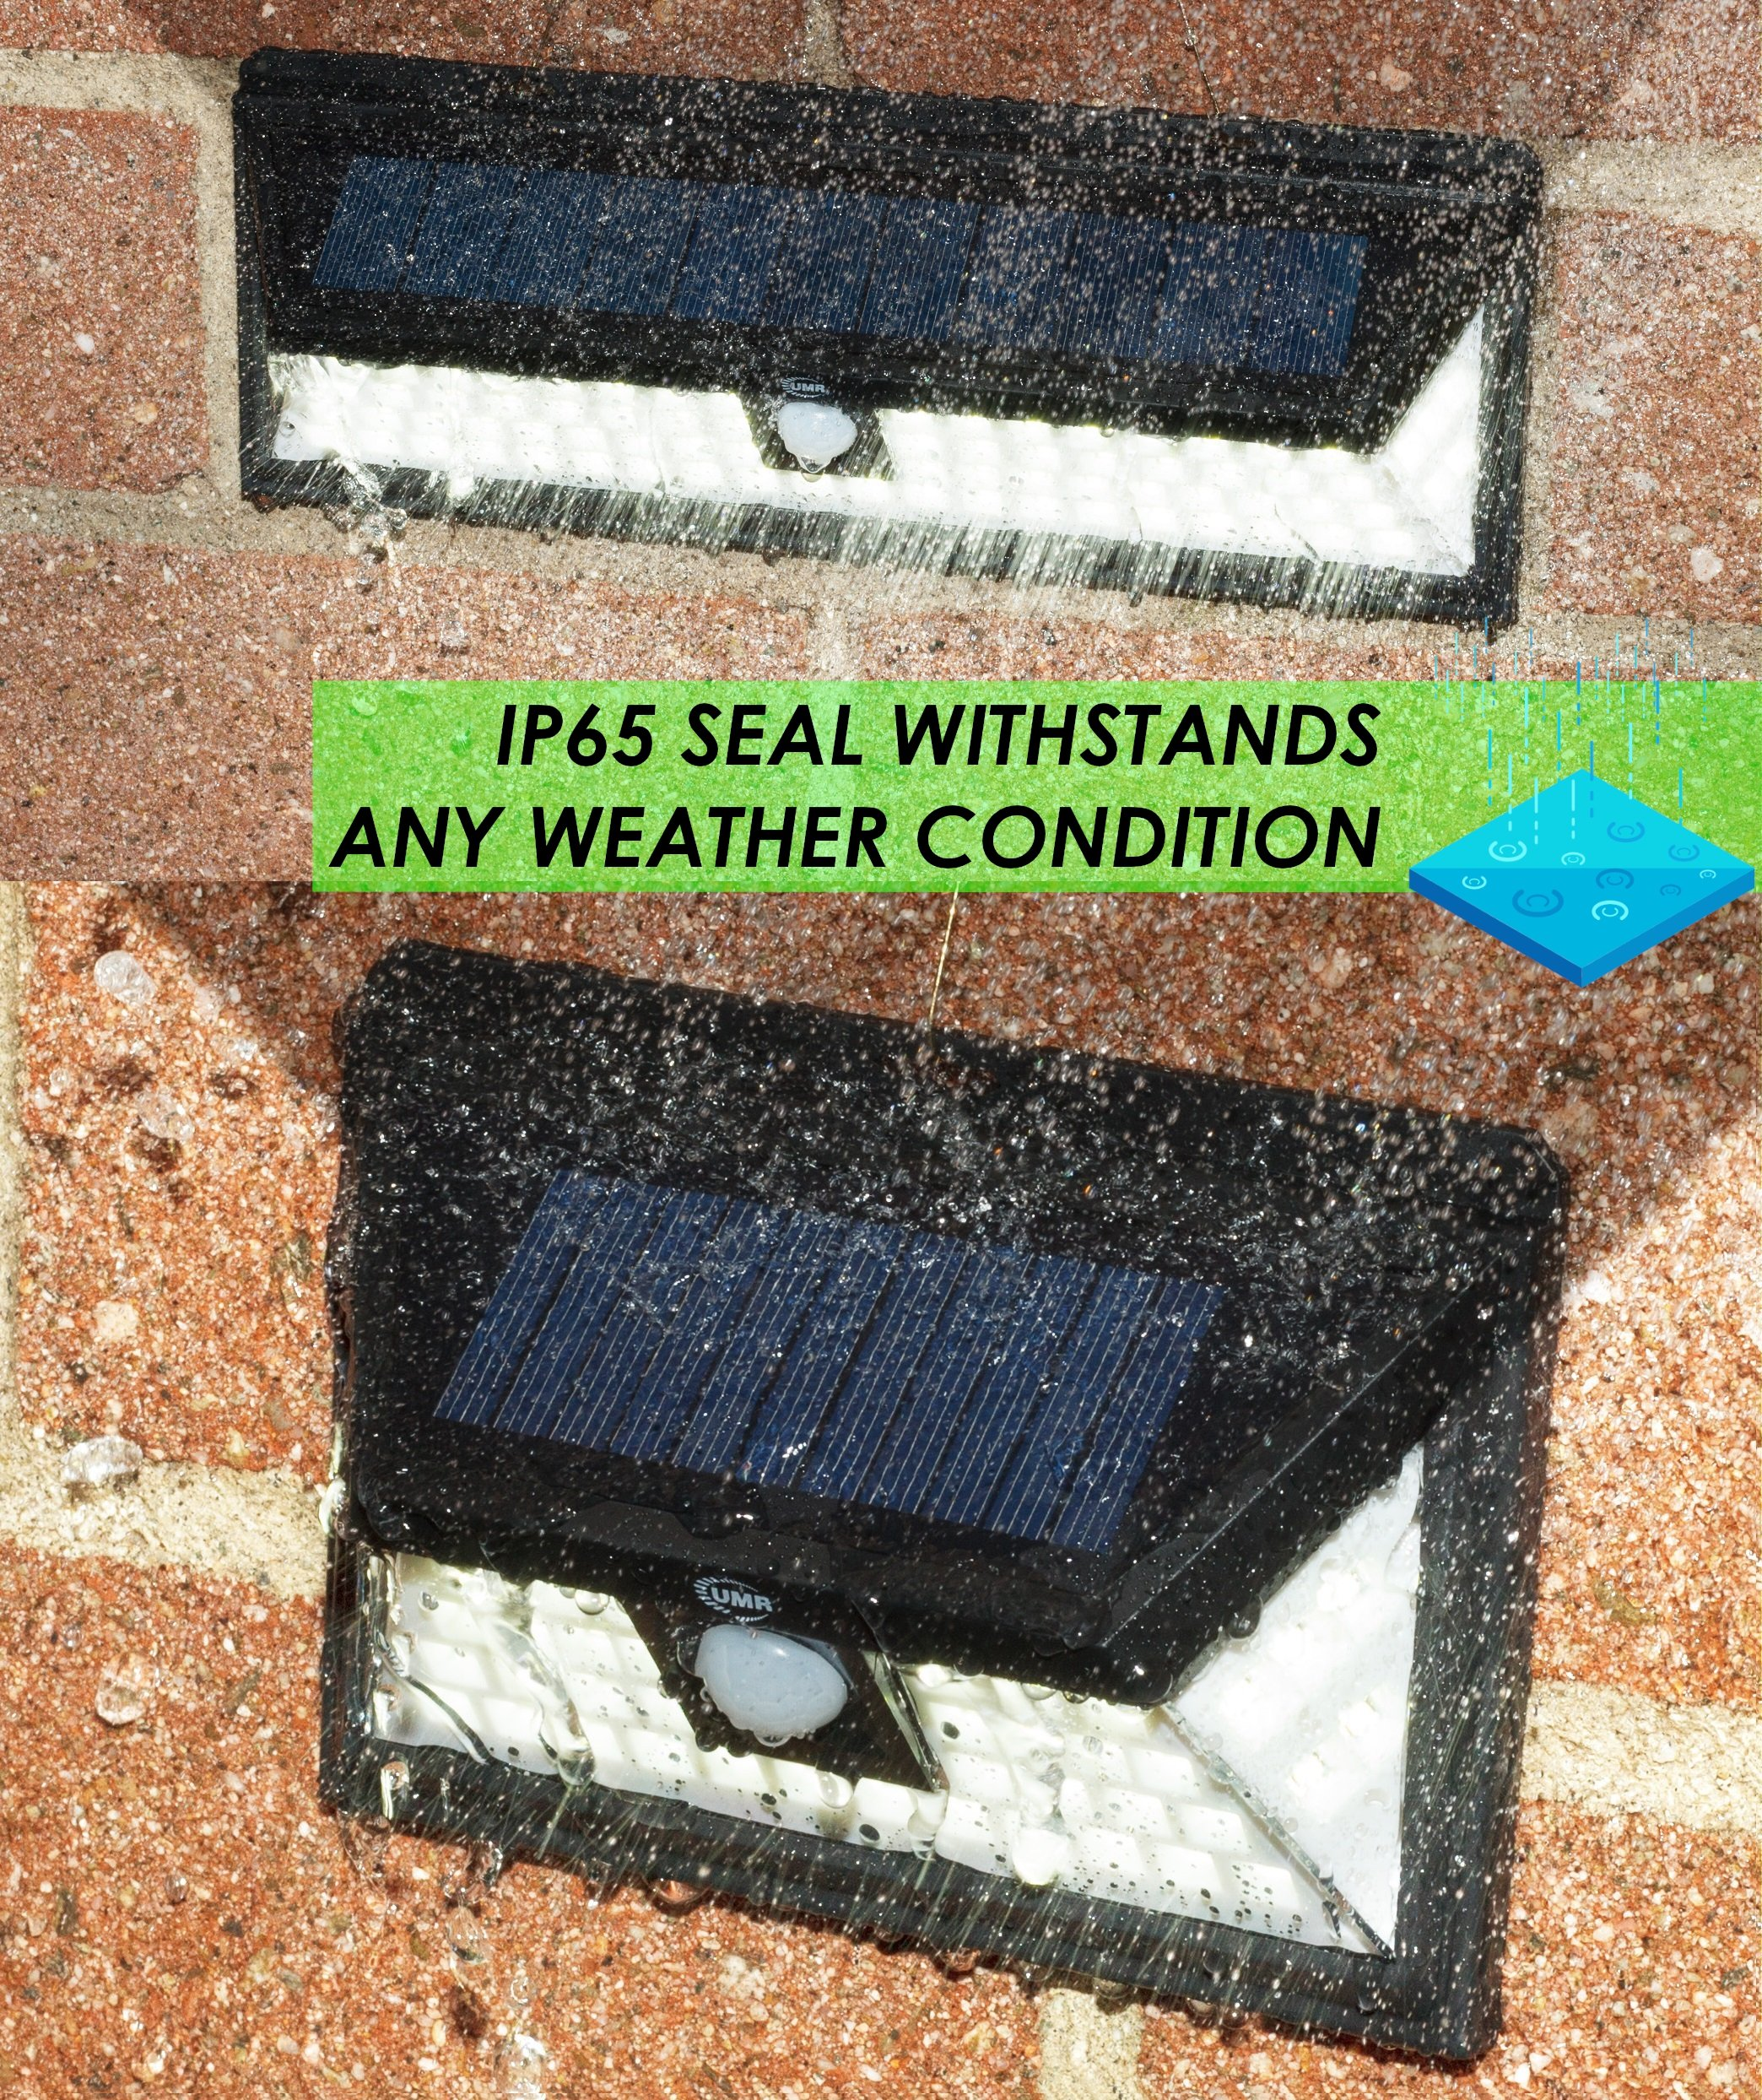 UMR 90 LED Solar Security Light - New 2018 Motion Sensor Outdoor Lighting w 5 LEDs Per Side, Dusk to Dawn Detector, Wireless Battery Power is Ultra-Bright for Exterior Outside Driveway Yard Patio Deck by UMR (Image #7)